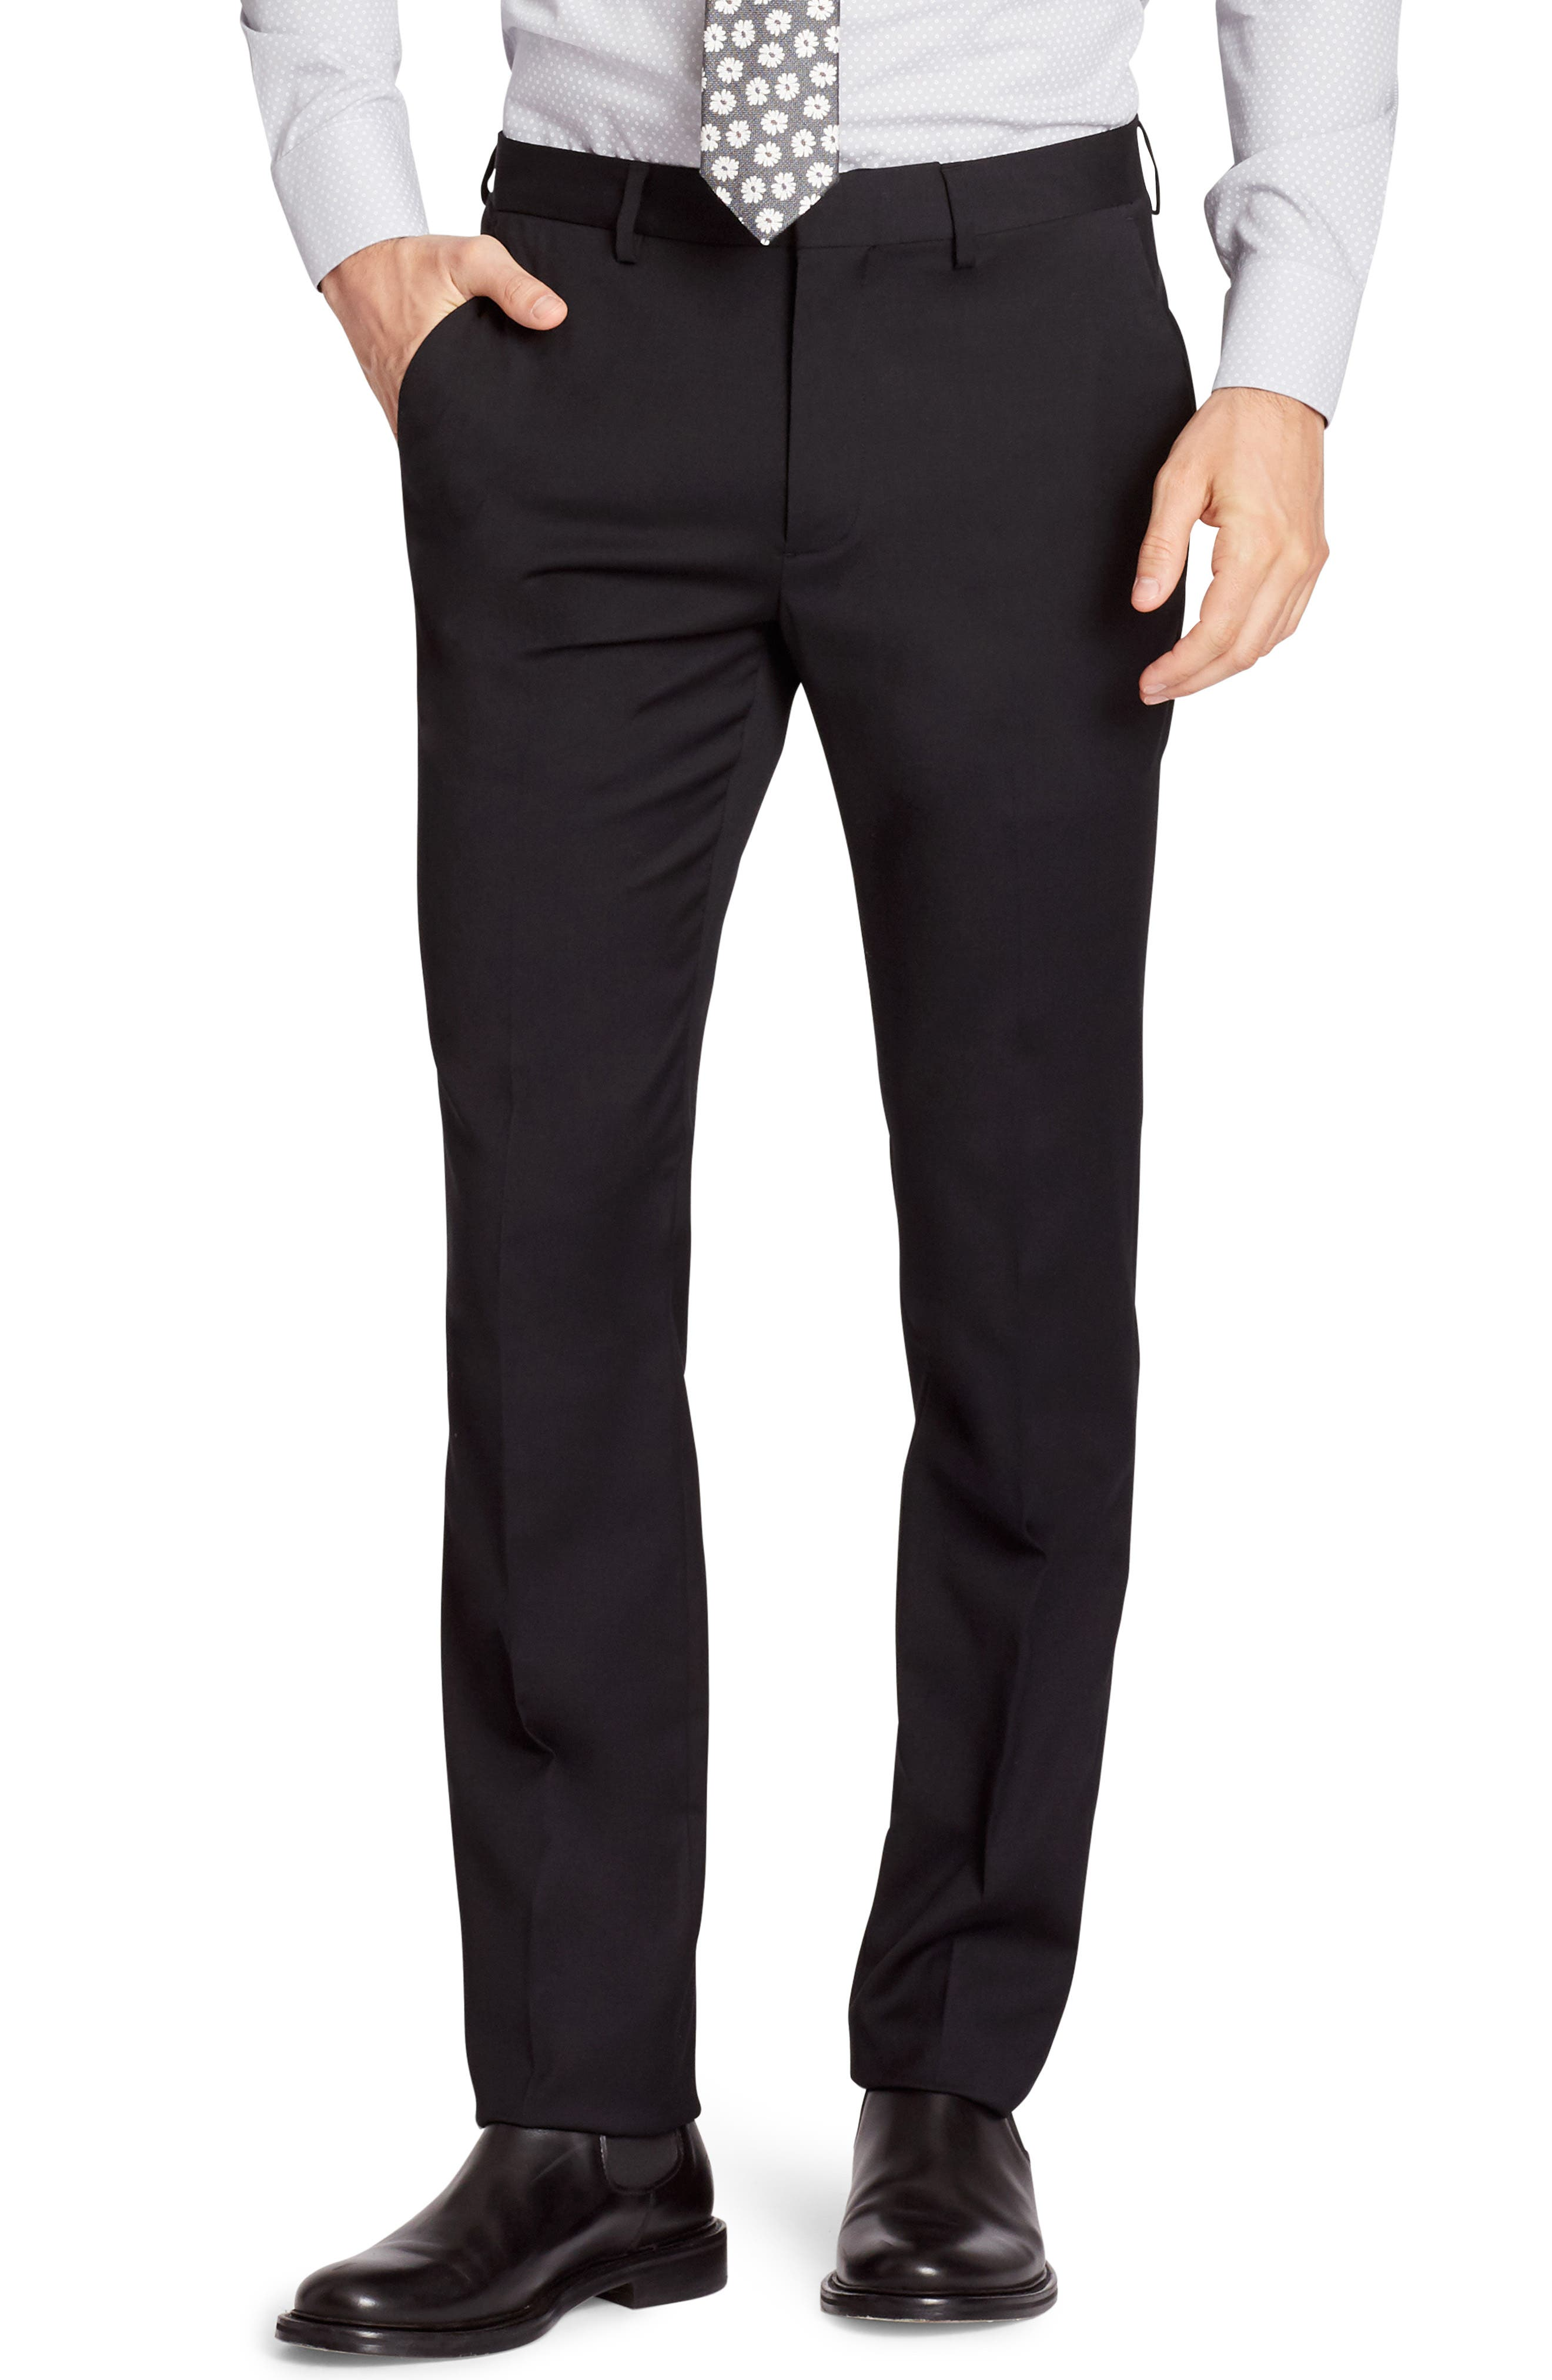 Jetsetter Slim Fit Flat Front Stretch Wool Trousers,                             Main thumbnail 1, color,                             BLACK